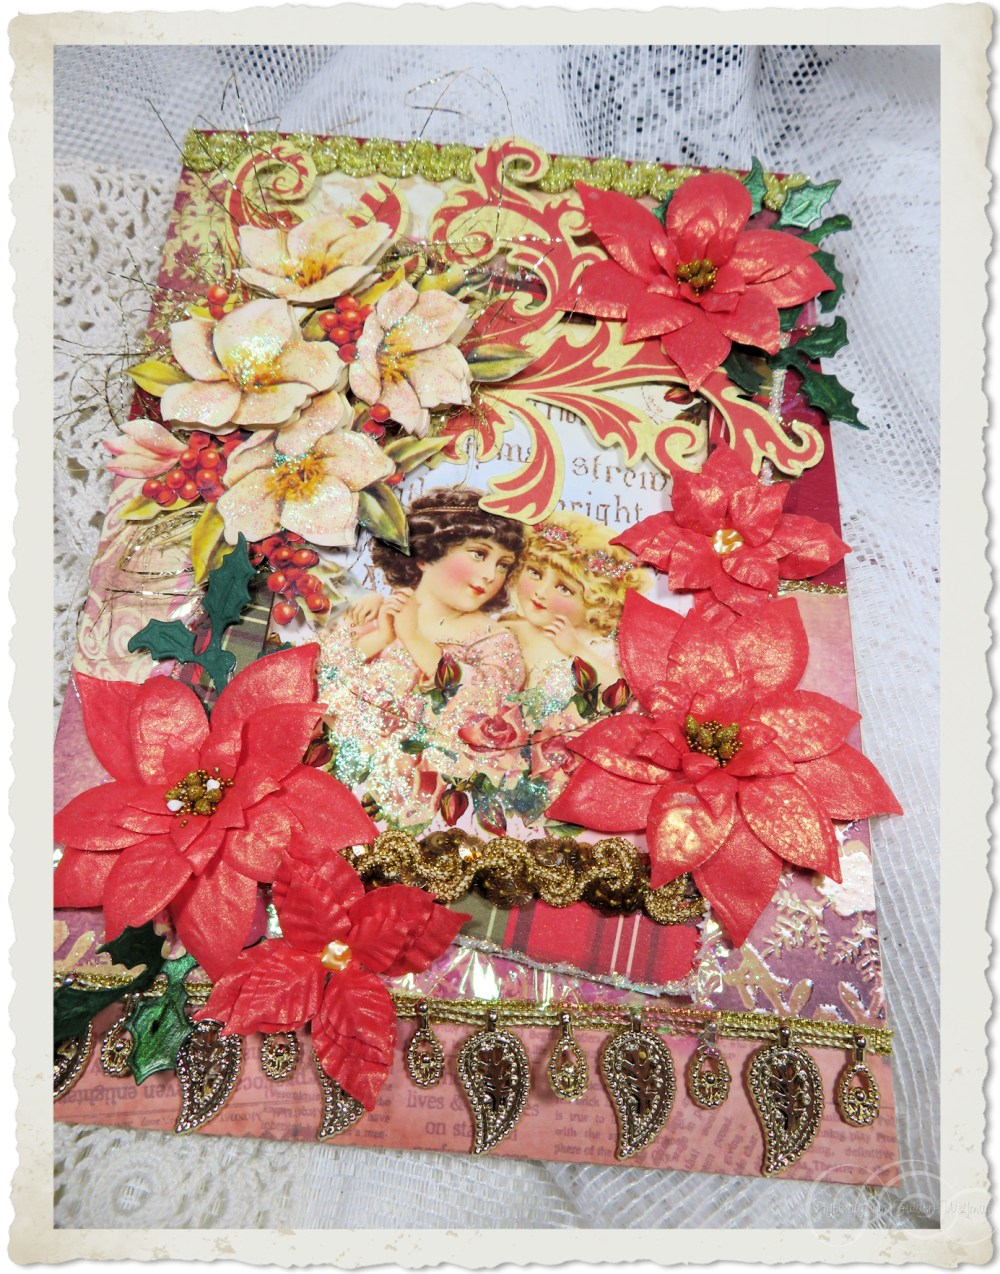 Handmade vintage style Christmas card with red poinsettia flowers